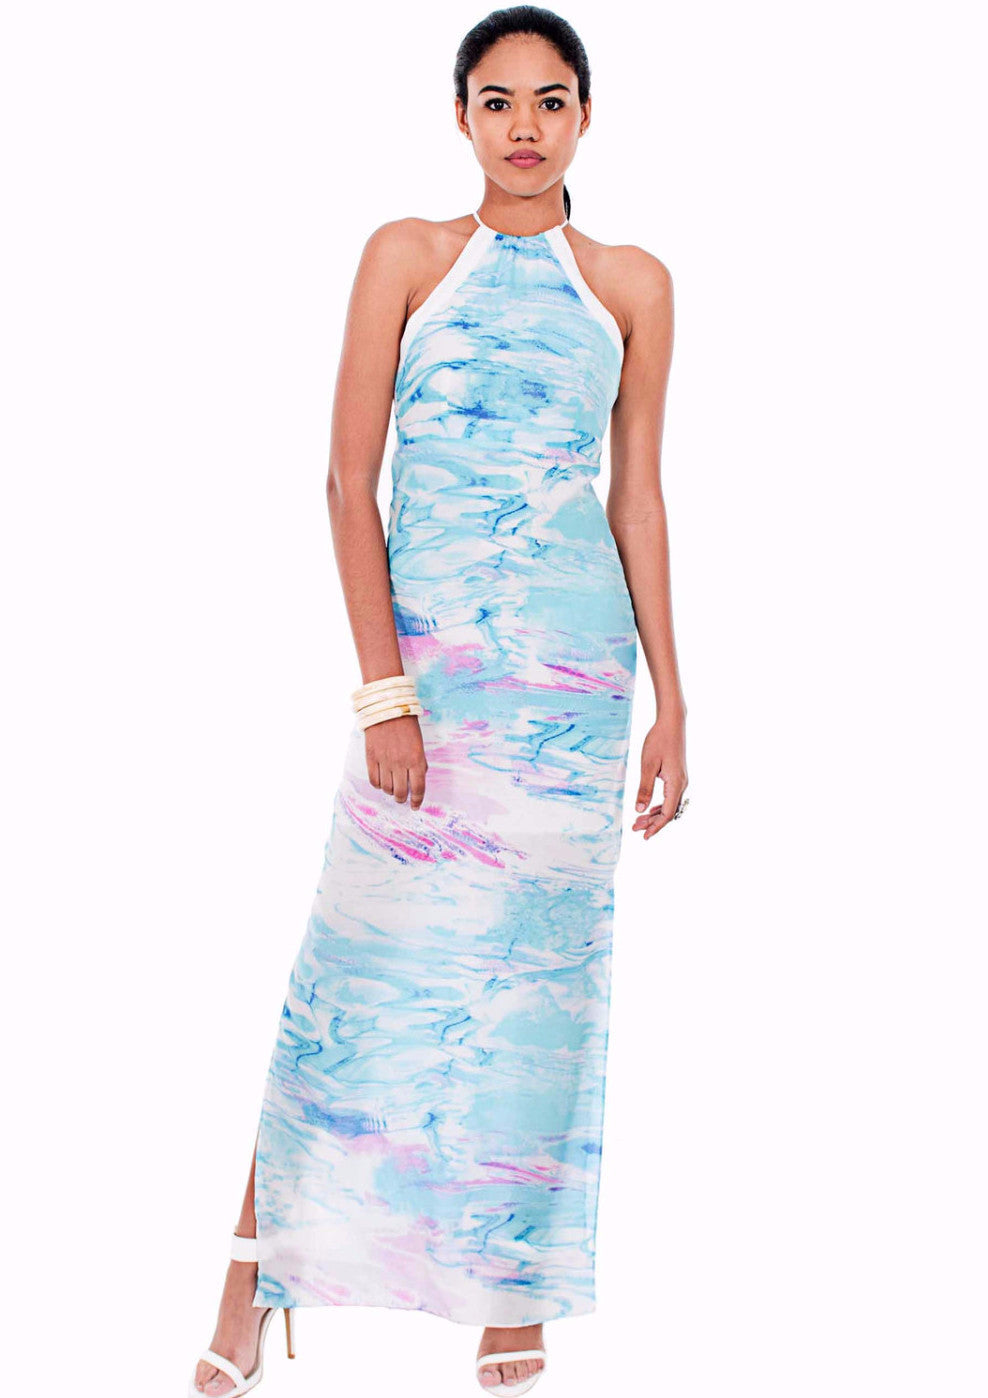 Cayman Water High Neck Silk Dress by Isy B. Design Front View on model